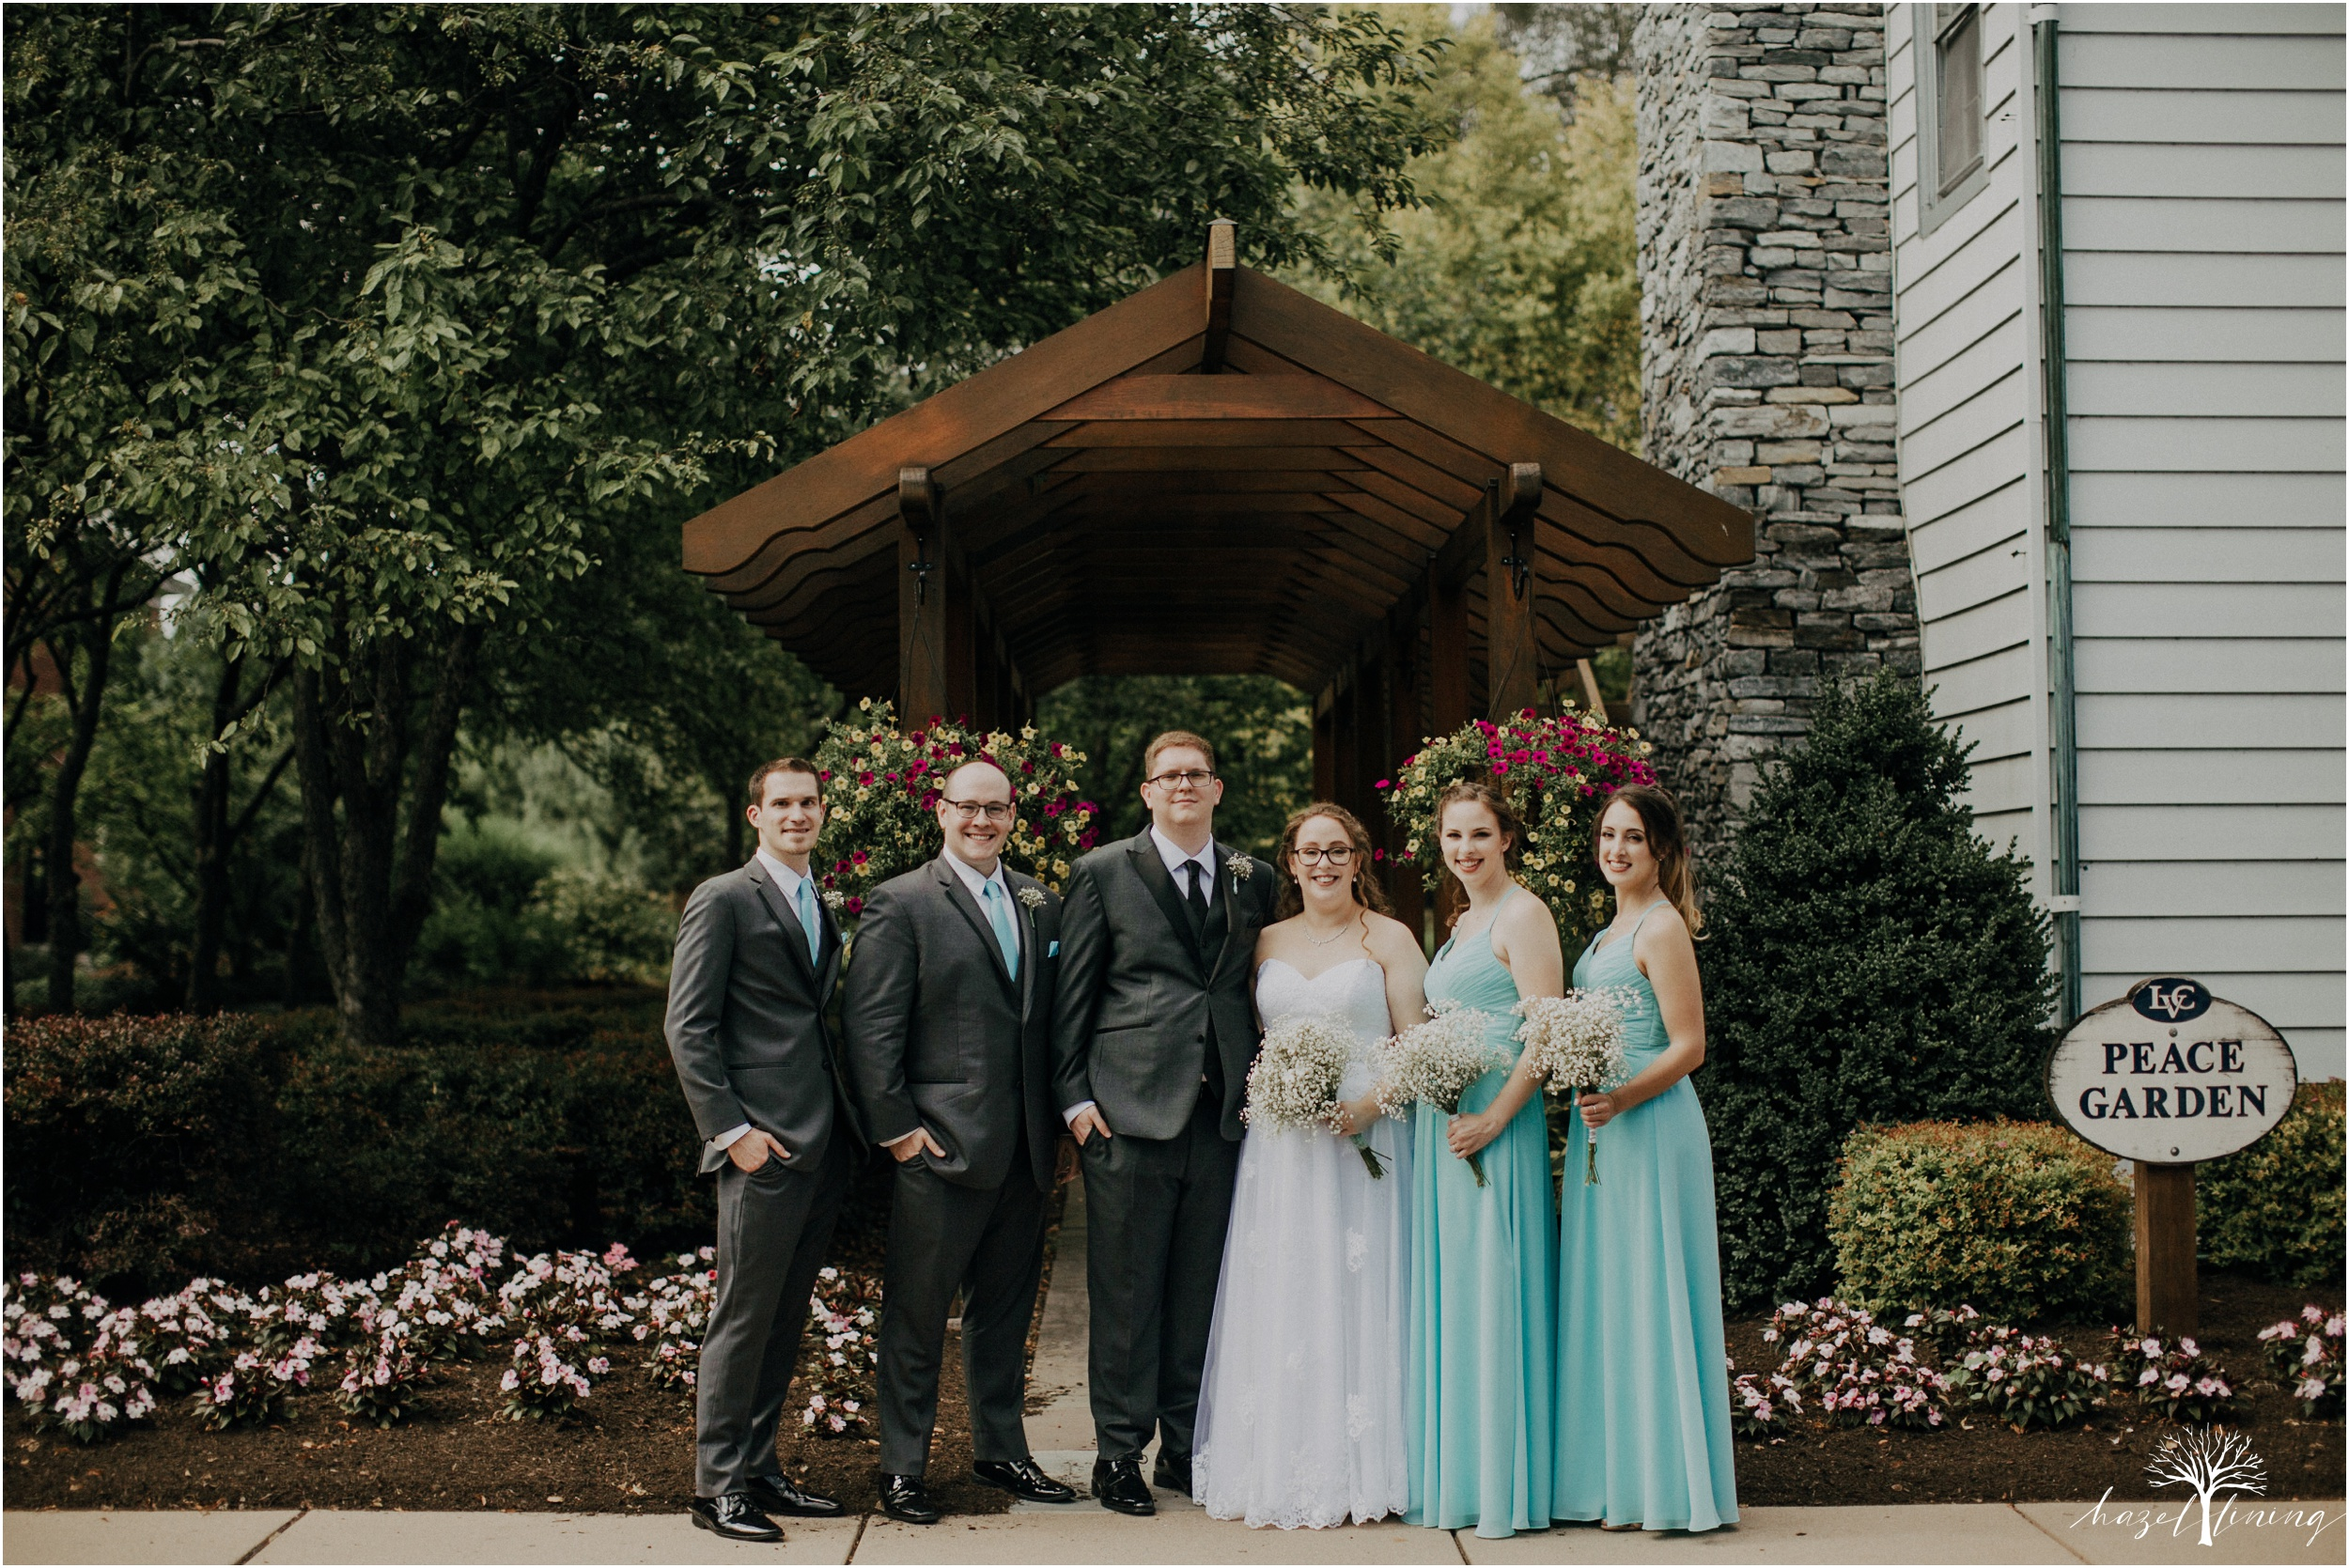 laura-zach-mccaskill-harmony-hall-lebanon-valley-college-summer-wedding-hazel-lining-photography-destination-elopement-wedding-engagement-photography_0078.jpg